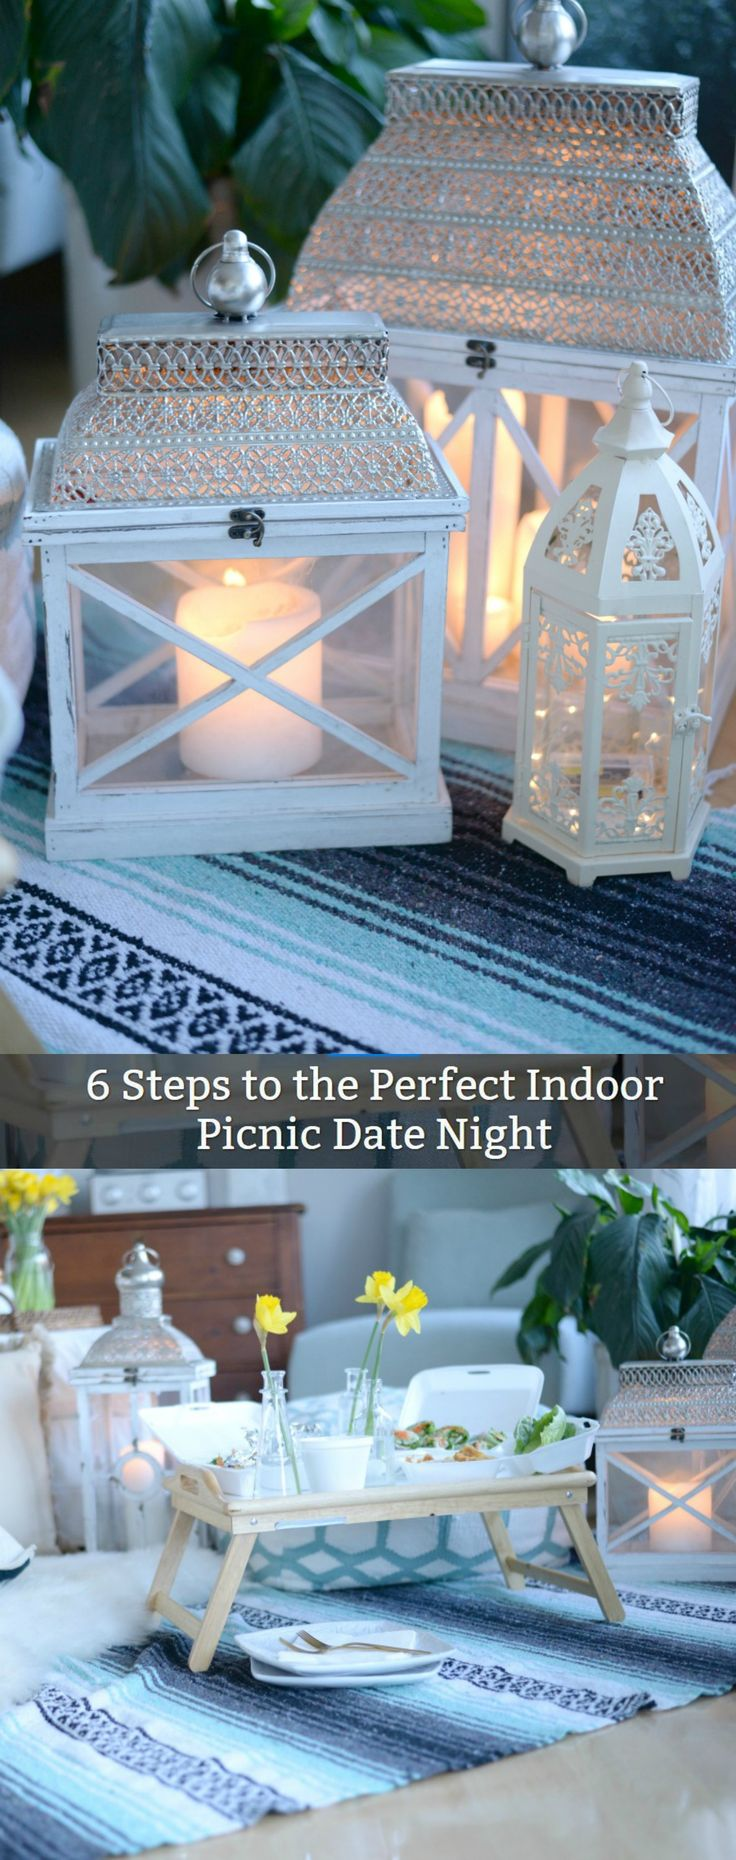 Ramp up your dinner routine with this fun indoor picnic idea. Save it for a date night or share the dinner with your entire family.